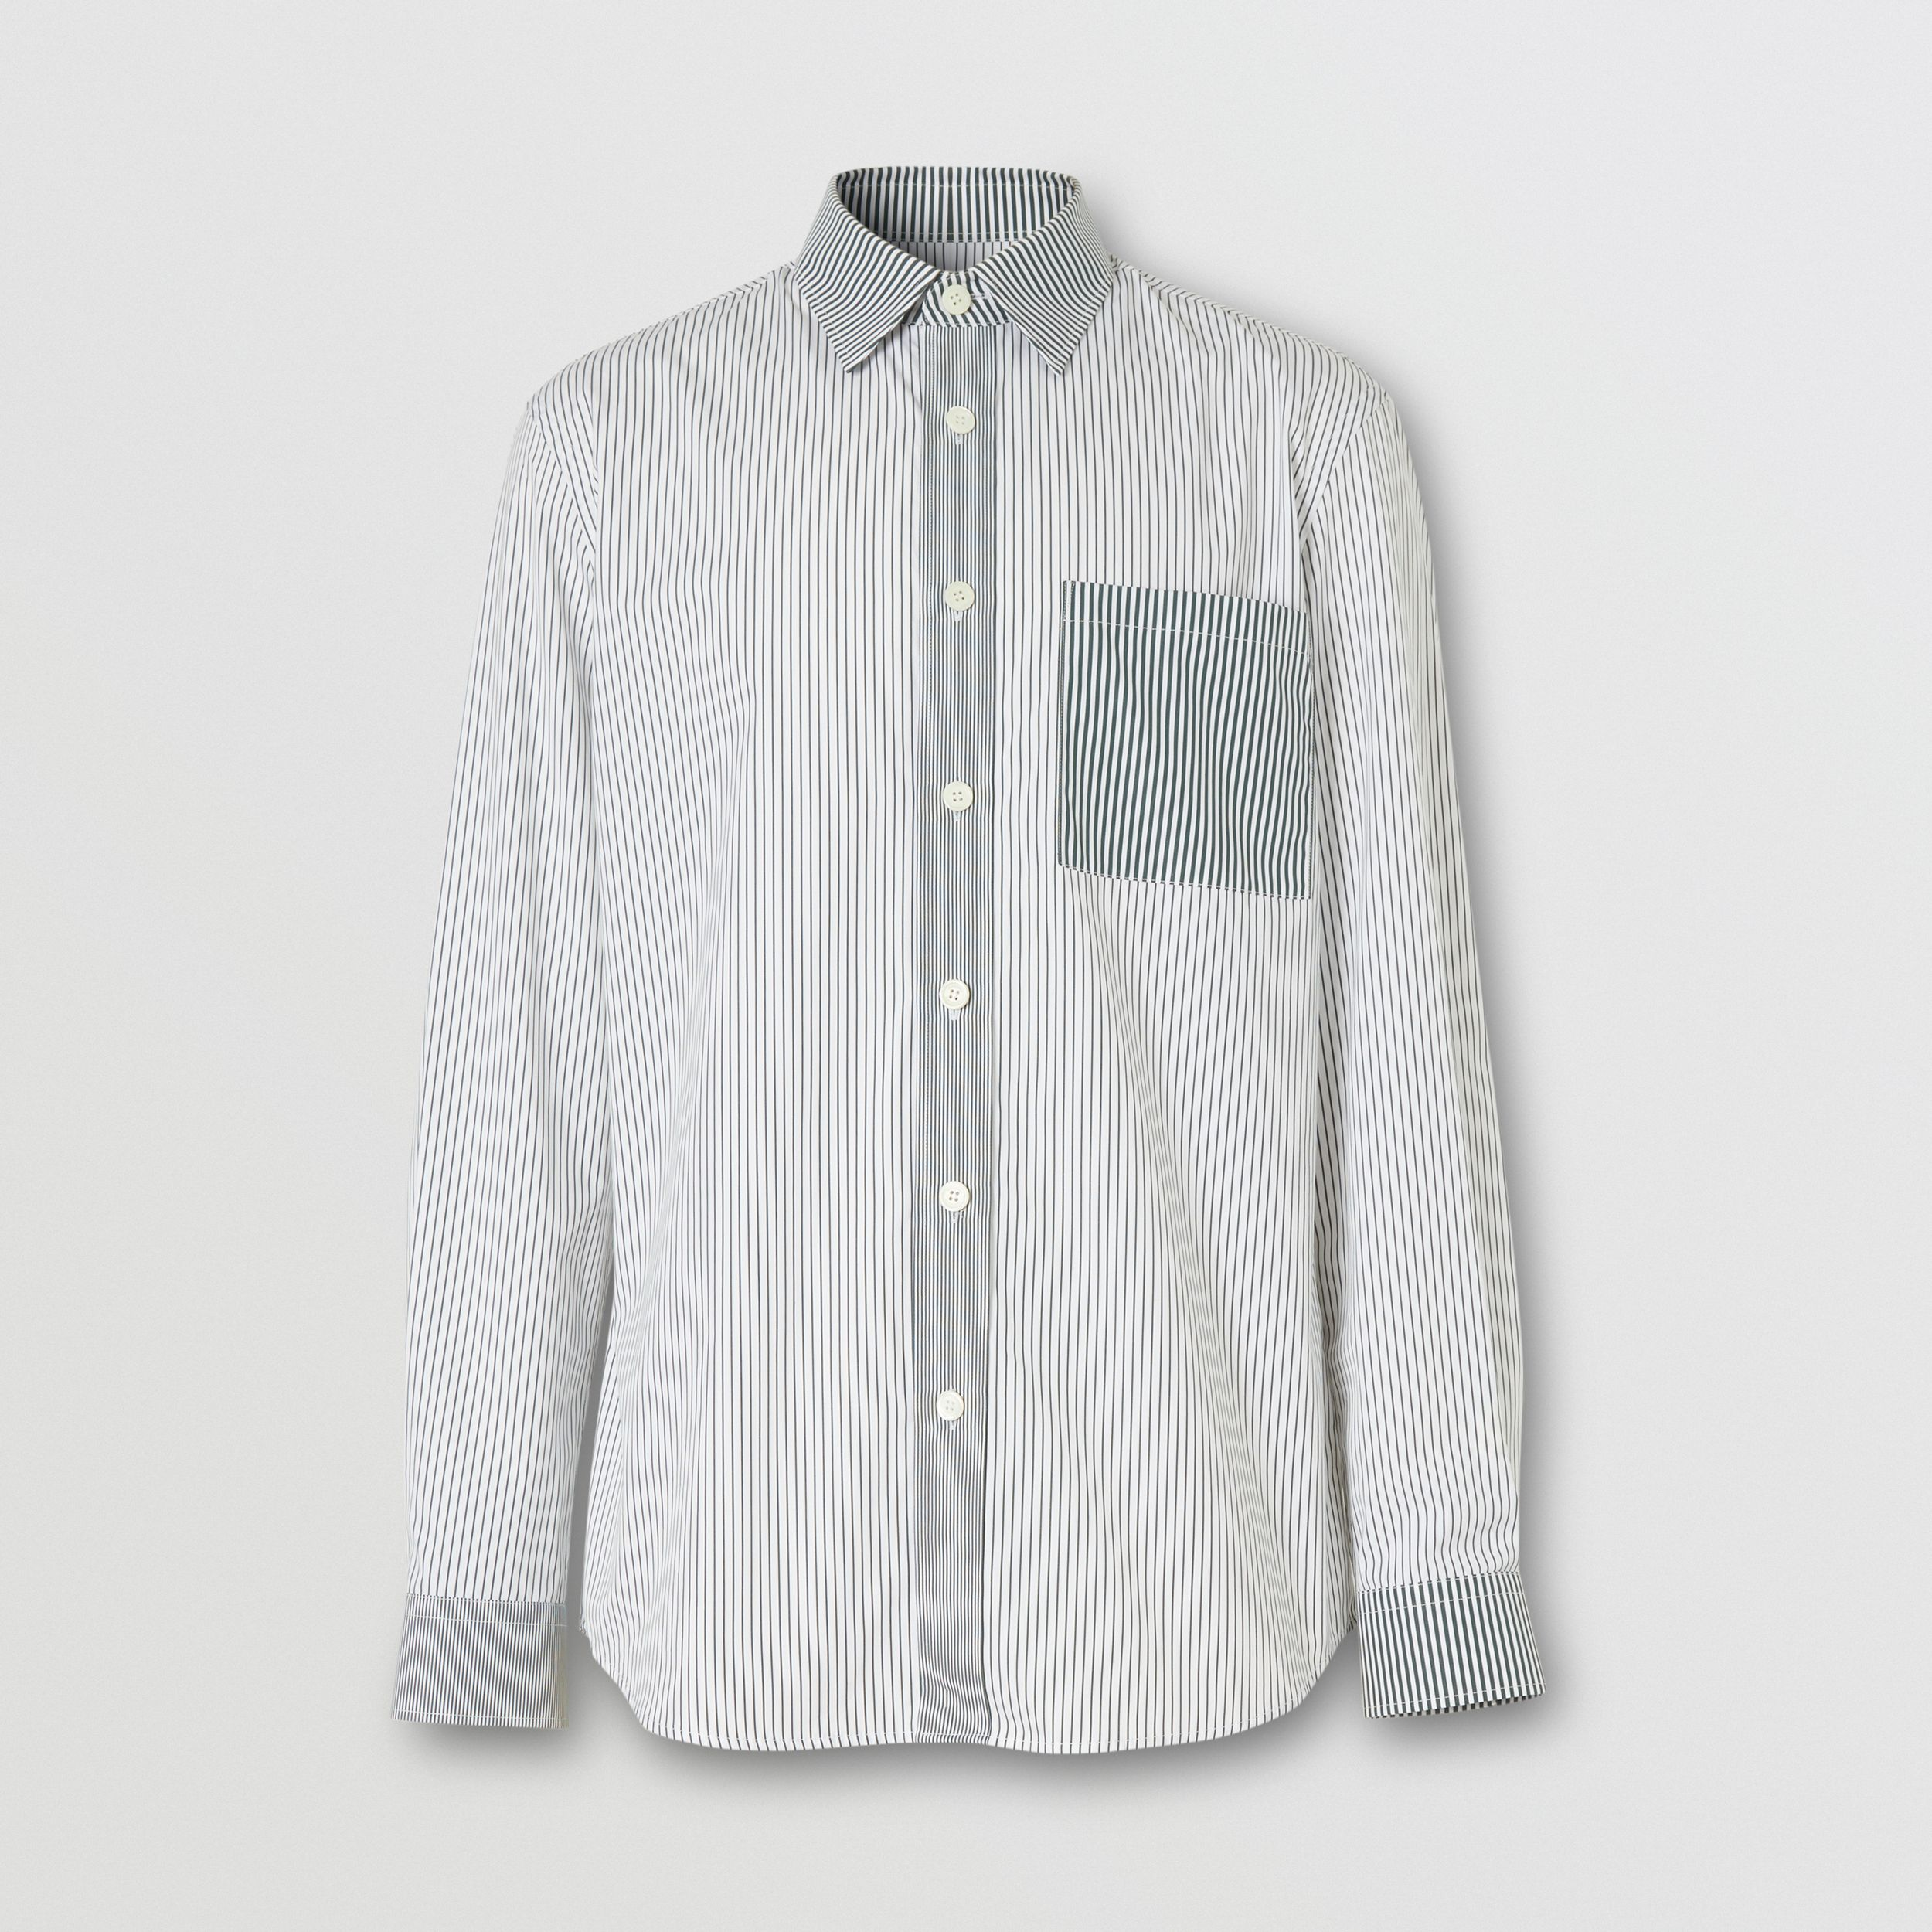 Classic Fit Contrast Stripe Cotton Shirt in Dark Pine Green - Men | Burberry - 4